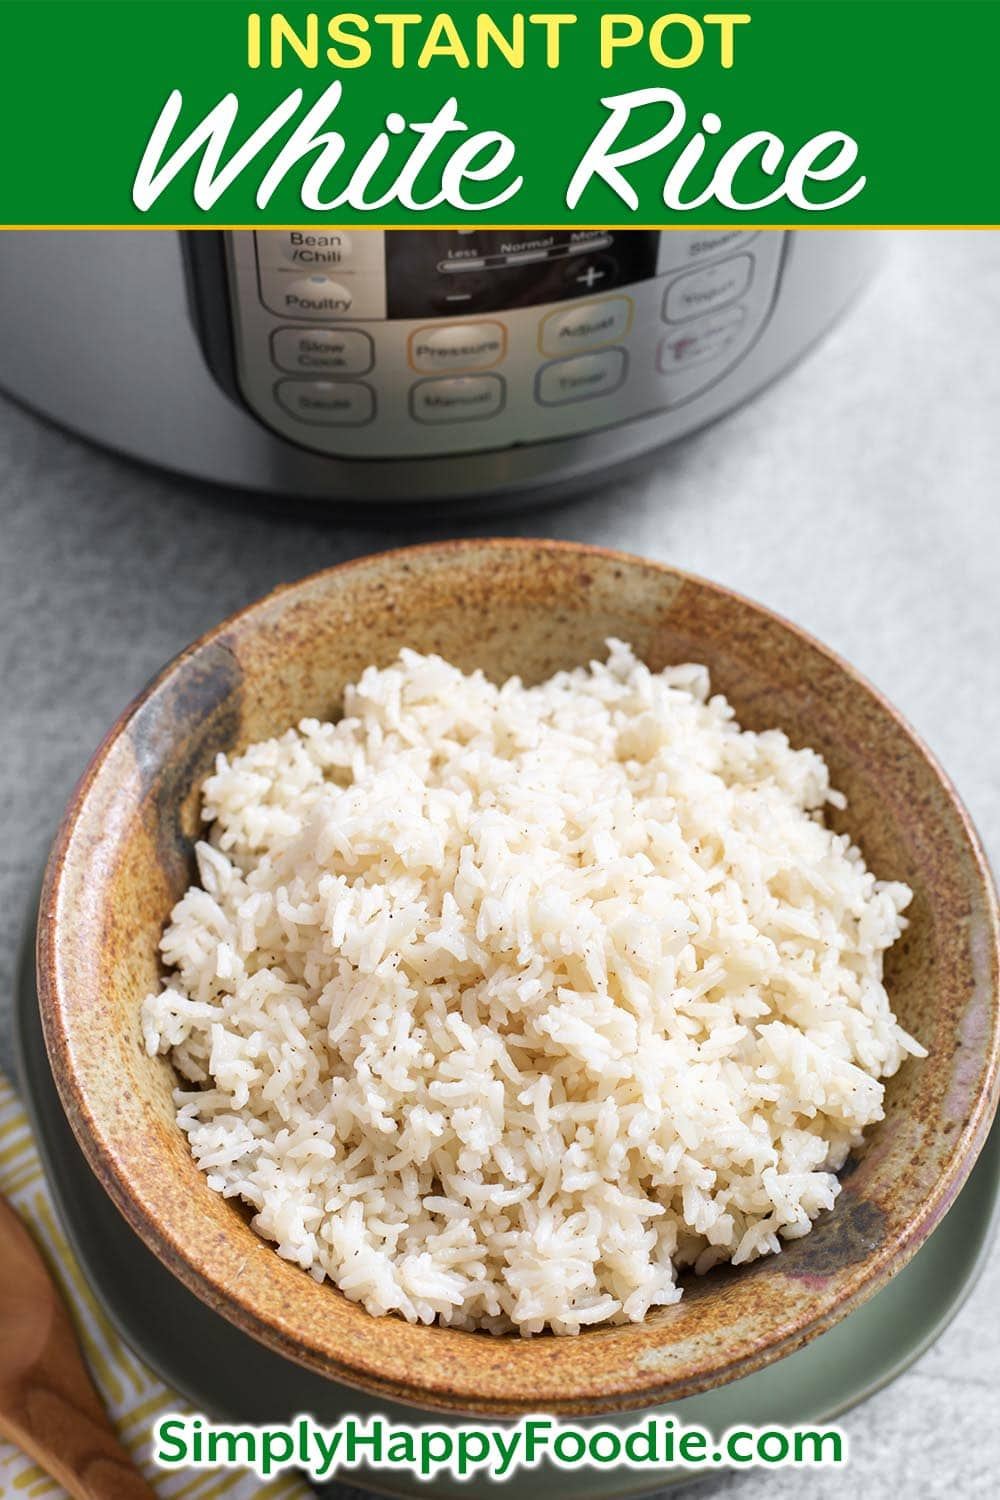 Instant Pot White Rice is an easy way to cook a pot of long grain white rice. You can control how done it gets, and this method of making rice is fairly hands-off. Pressure cooker rice is a good base for other recipes, so you can make a big batch to have on hand! Easy Instant Pot recipes by simplyhappyfoodie.com #instantpotrice #instantpotwhiterice